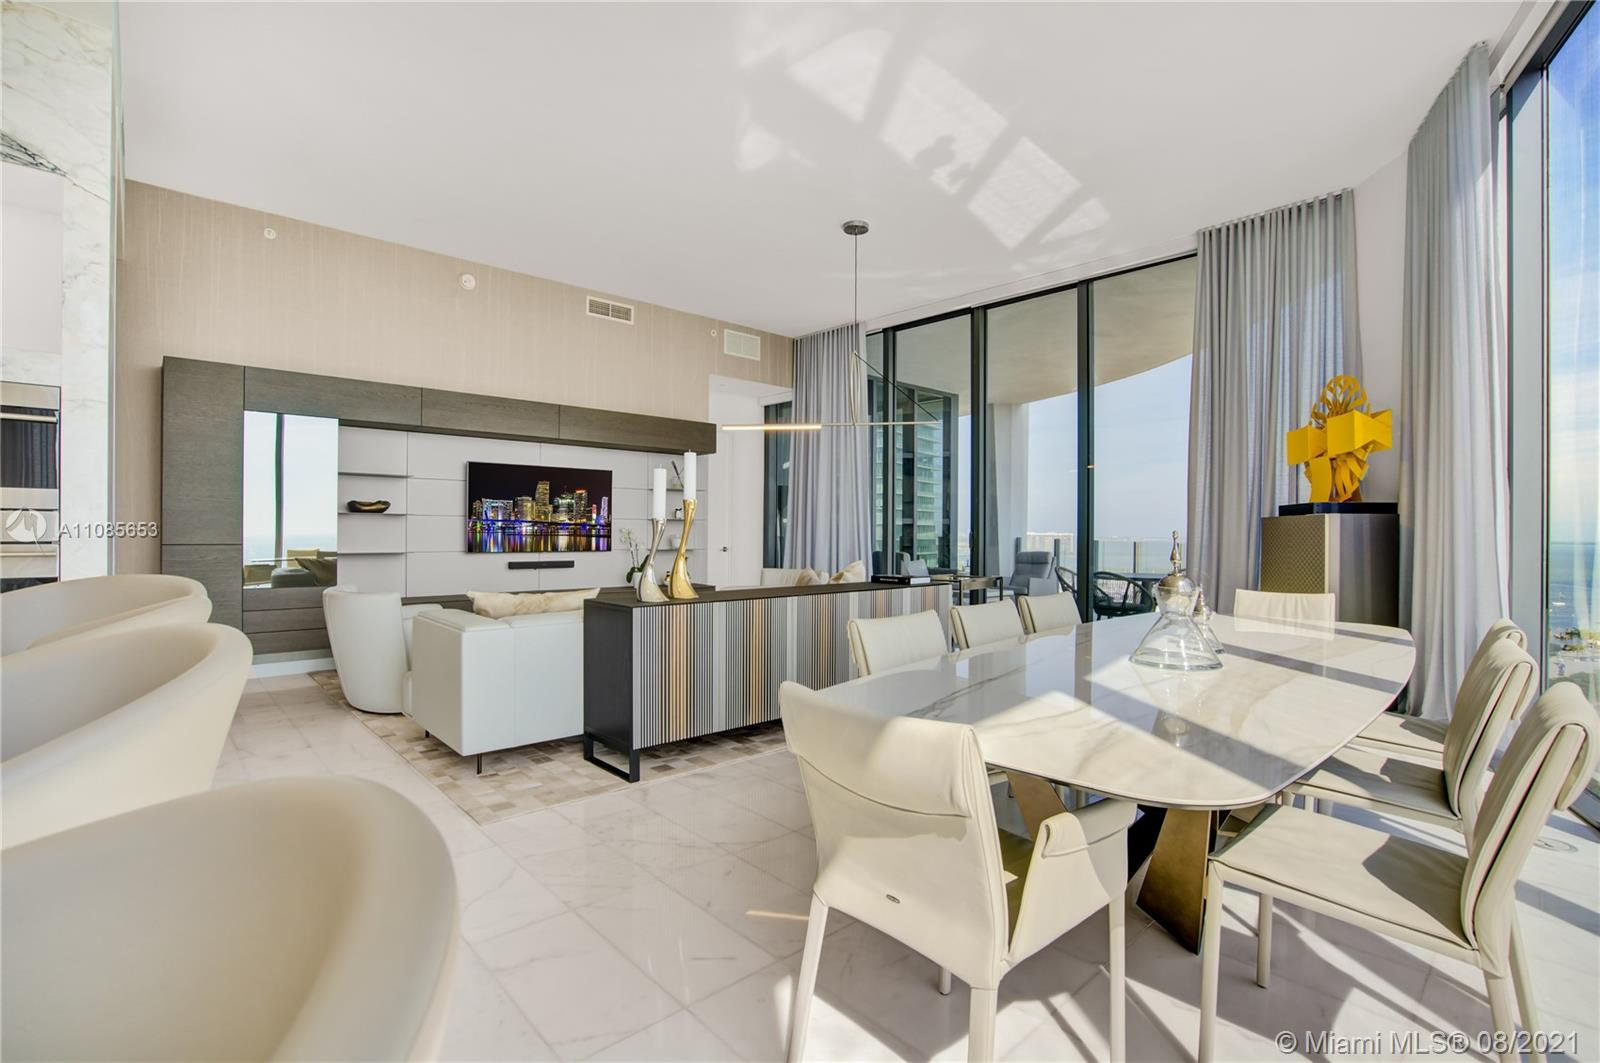 The most coveted line in Park Grove, this corner, high-floor residence boasts formidable bay and city views. Keyed elevator opens to private foyer that leads to a spacious, layout with 12 ft glass walls, separate service entrance, marble flooring, built-in closets, bayfront kitchen with marble counters, Wolf gas range plus Sub-zero and Wolf appliances, pantry and laundry room. A secondary kitchen can be converted to den, media room or entertainment lounge (refer to renderings). A crown jewel designed by Rem Koolhaas with world class amenities including bayfront pool, spa, sauna, wellness lounge with treatment rooms, wine room and more occupying over 5 acres of Enzo Enea grounds. Also available for sale at $4,850,000.